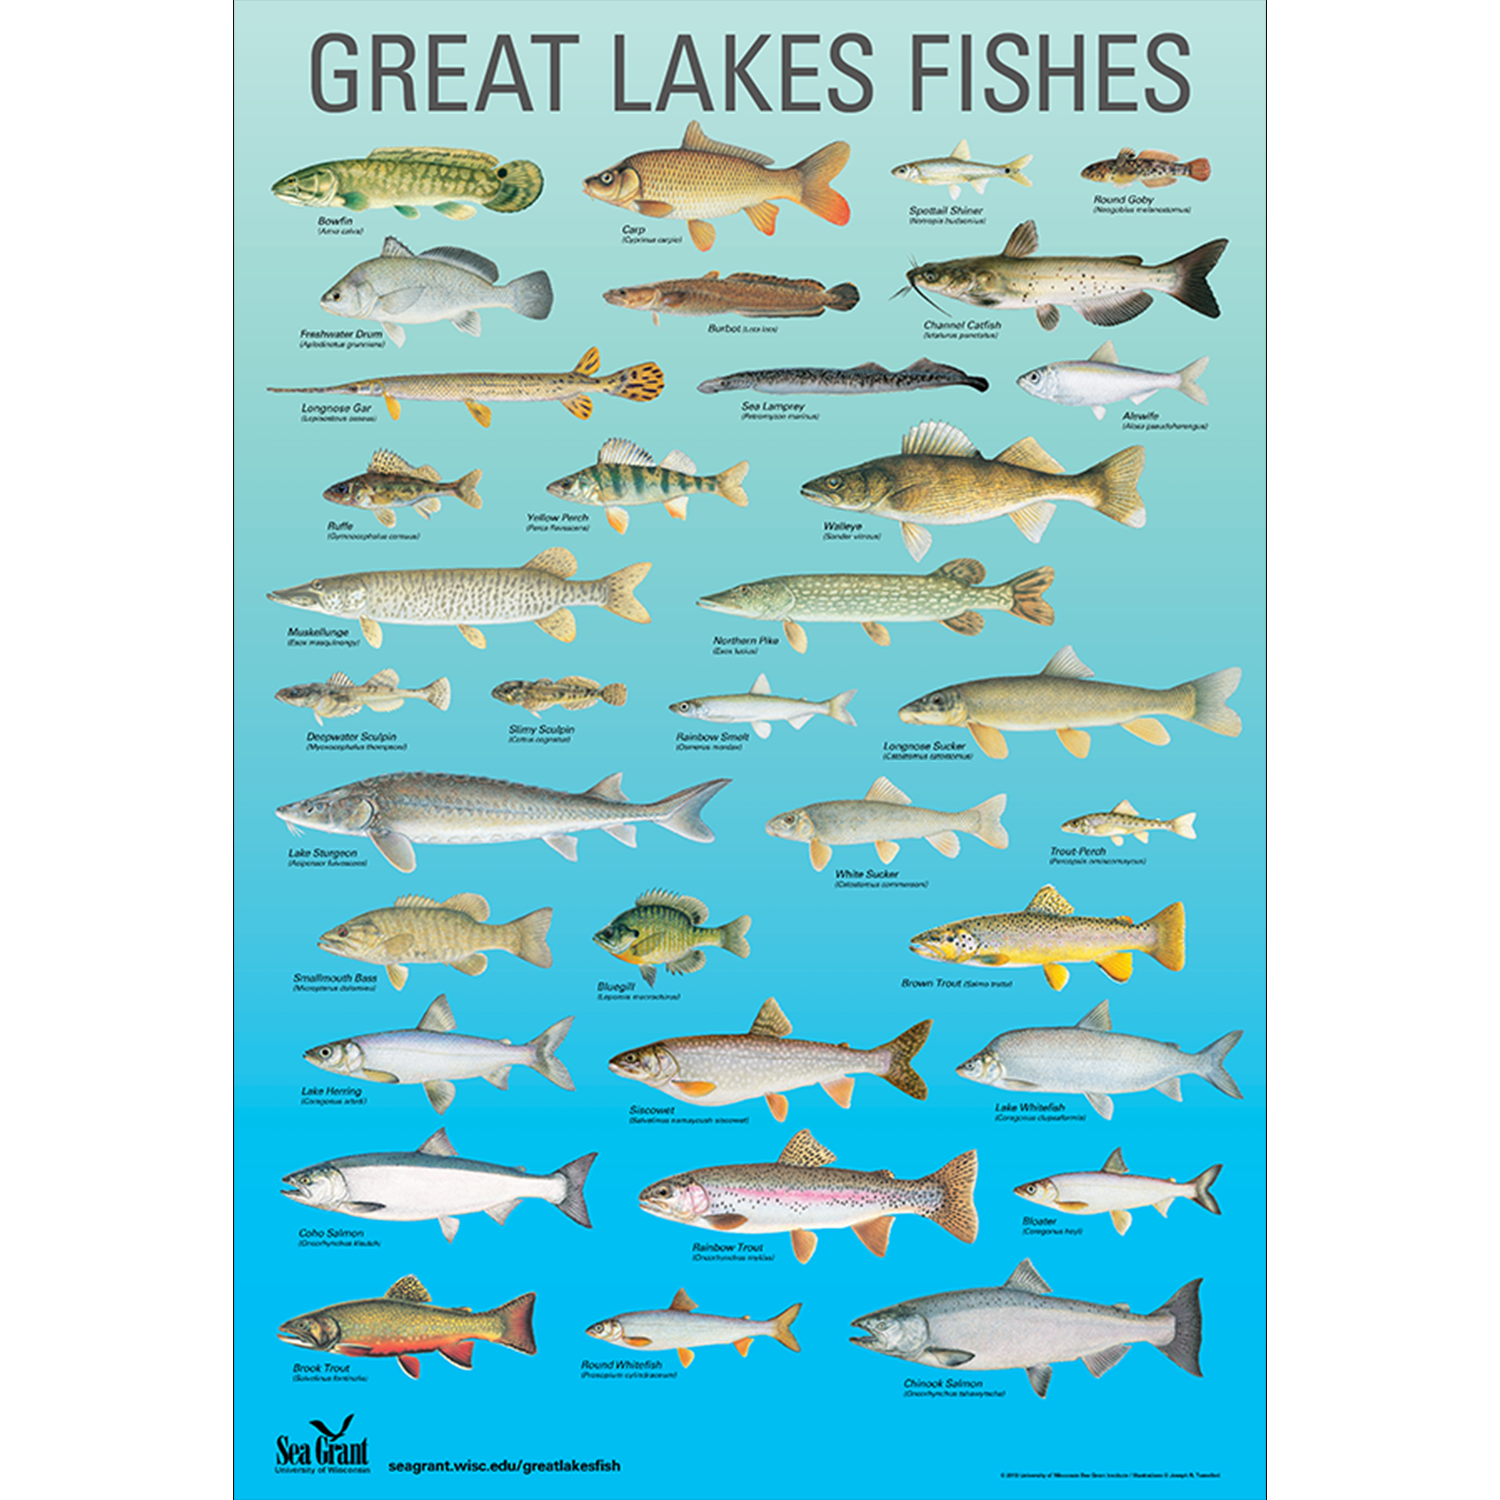 Great lakes fishes poster 2014 publications for Lake erie fish species